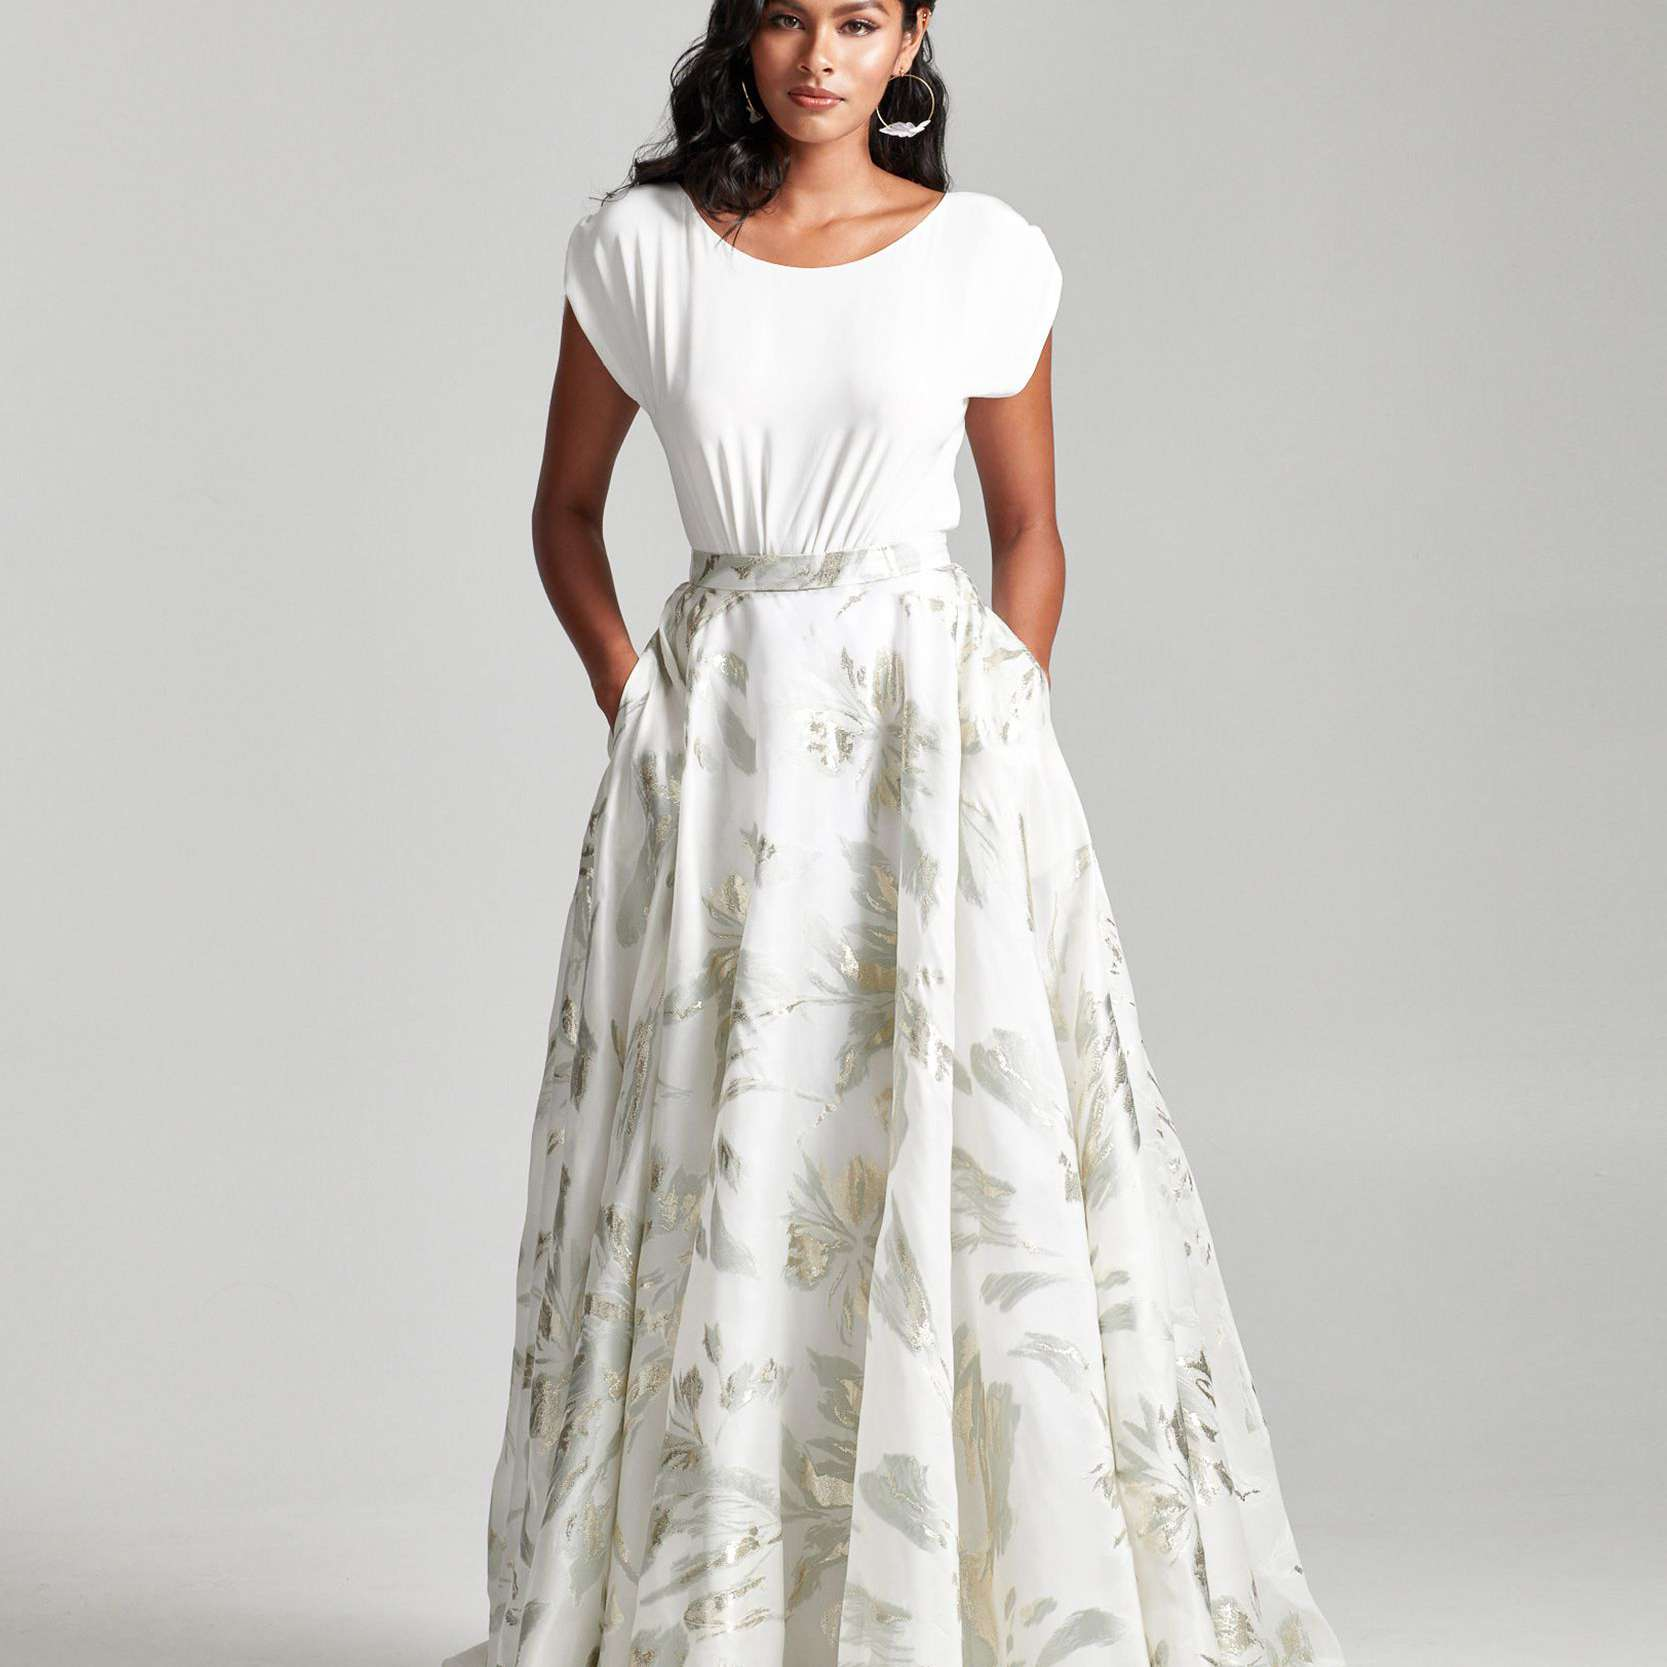 Model in short-sleeve white top with floral printed skirt